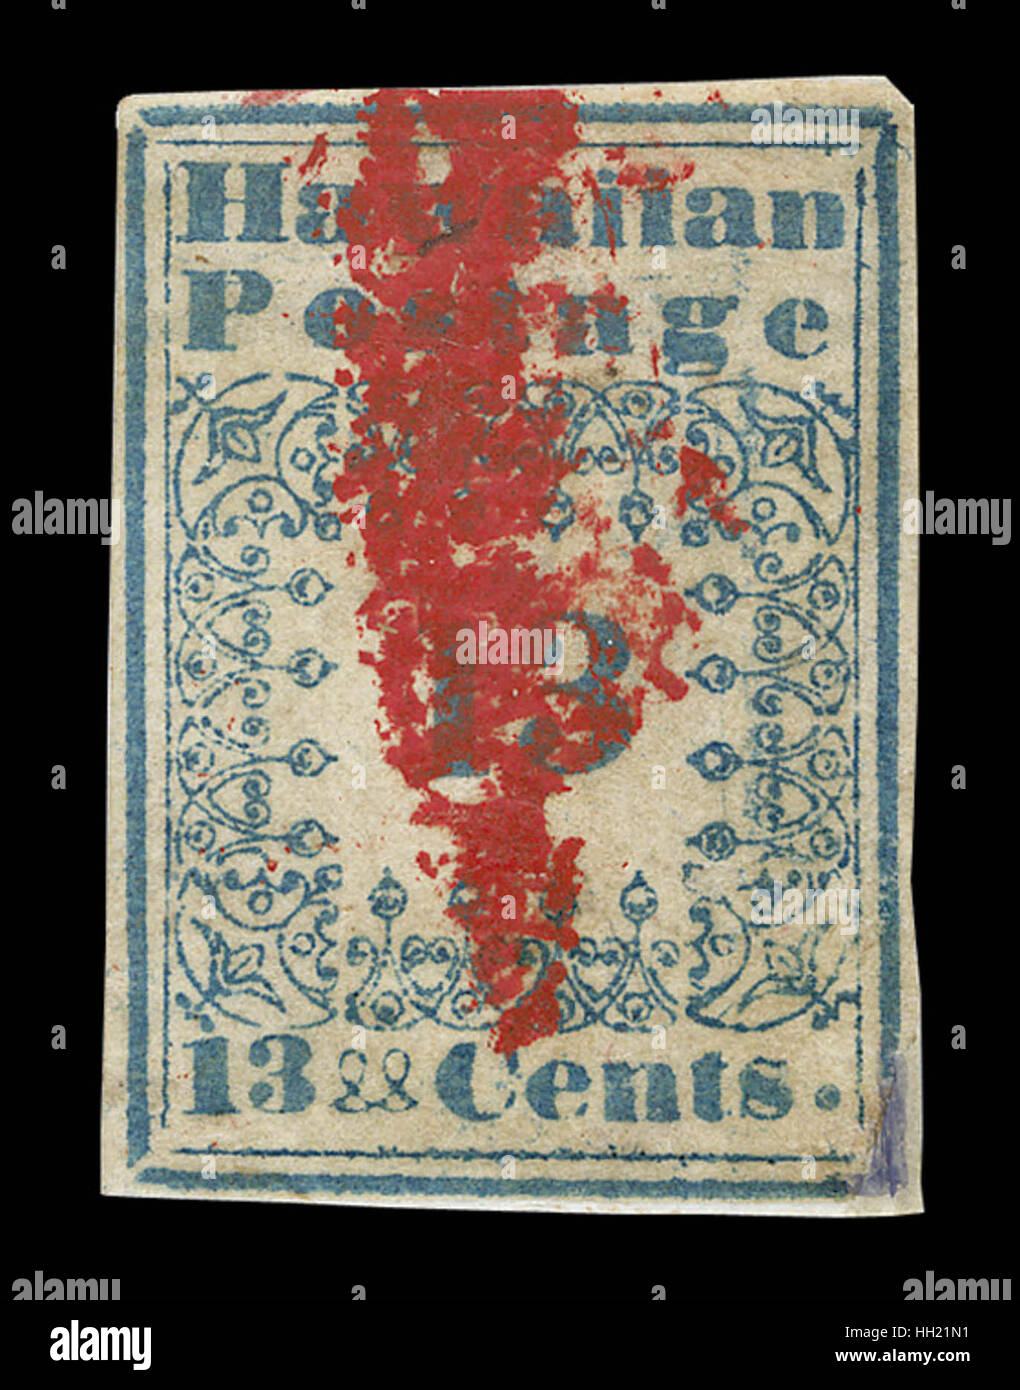 Philatic Rarerities.The British Library's Philatelic Collections are the world's largest, most diverse and - Stock Image